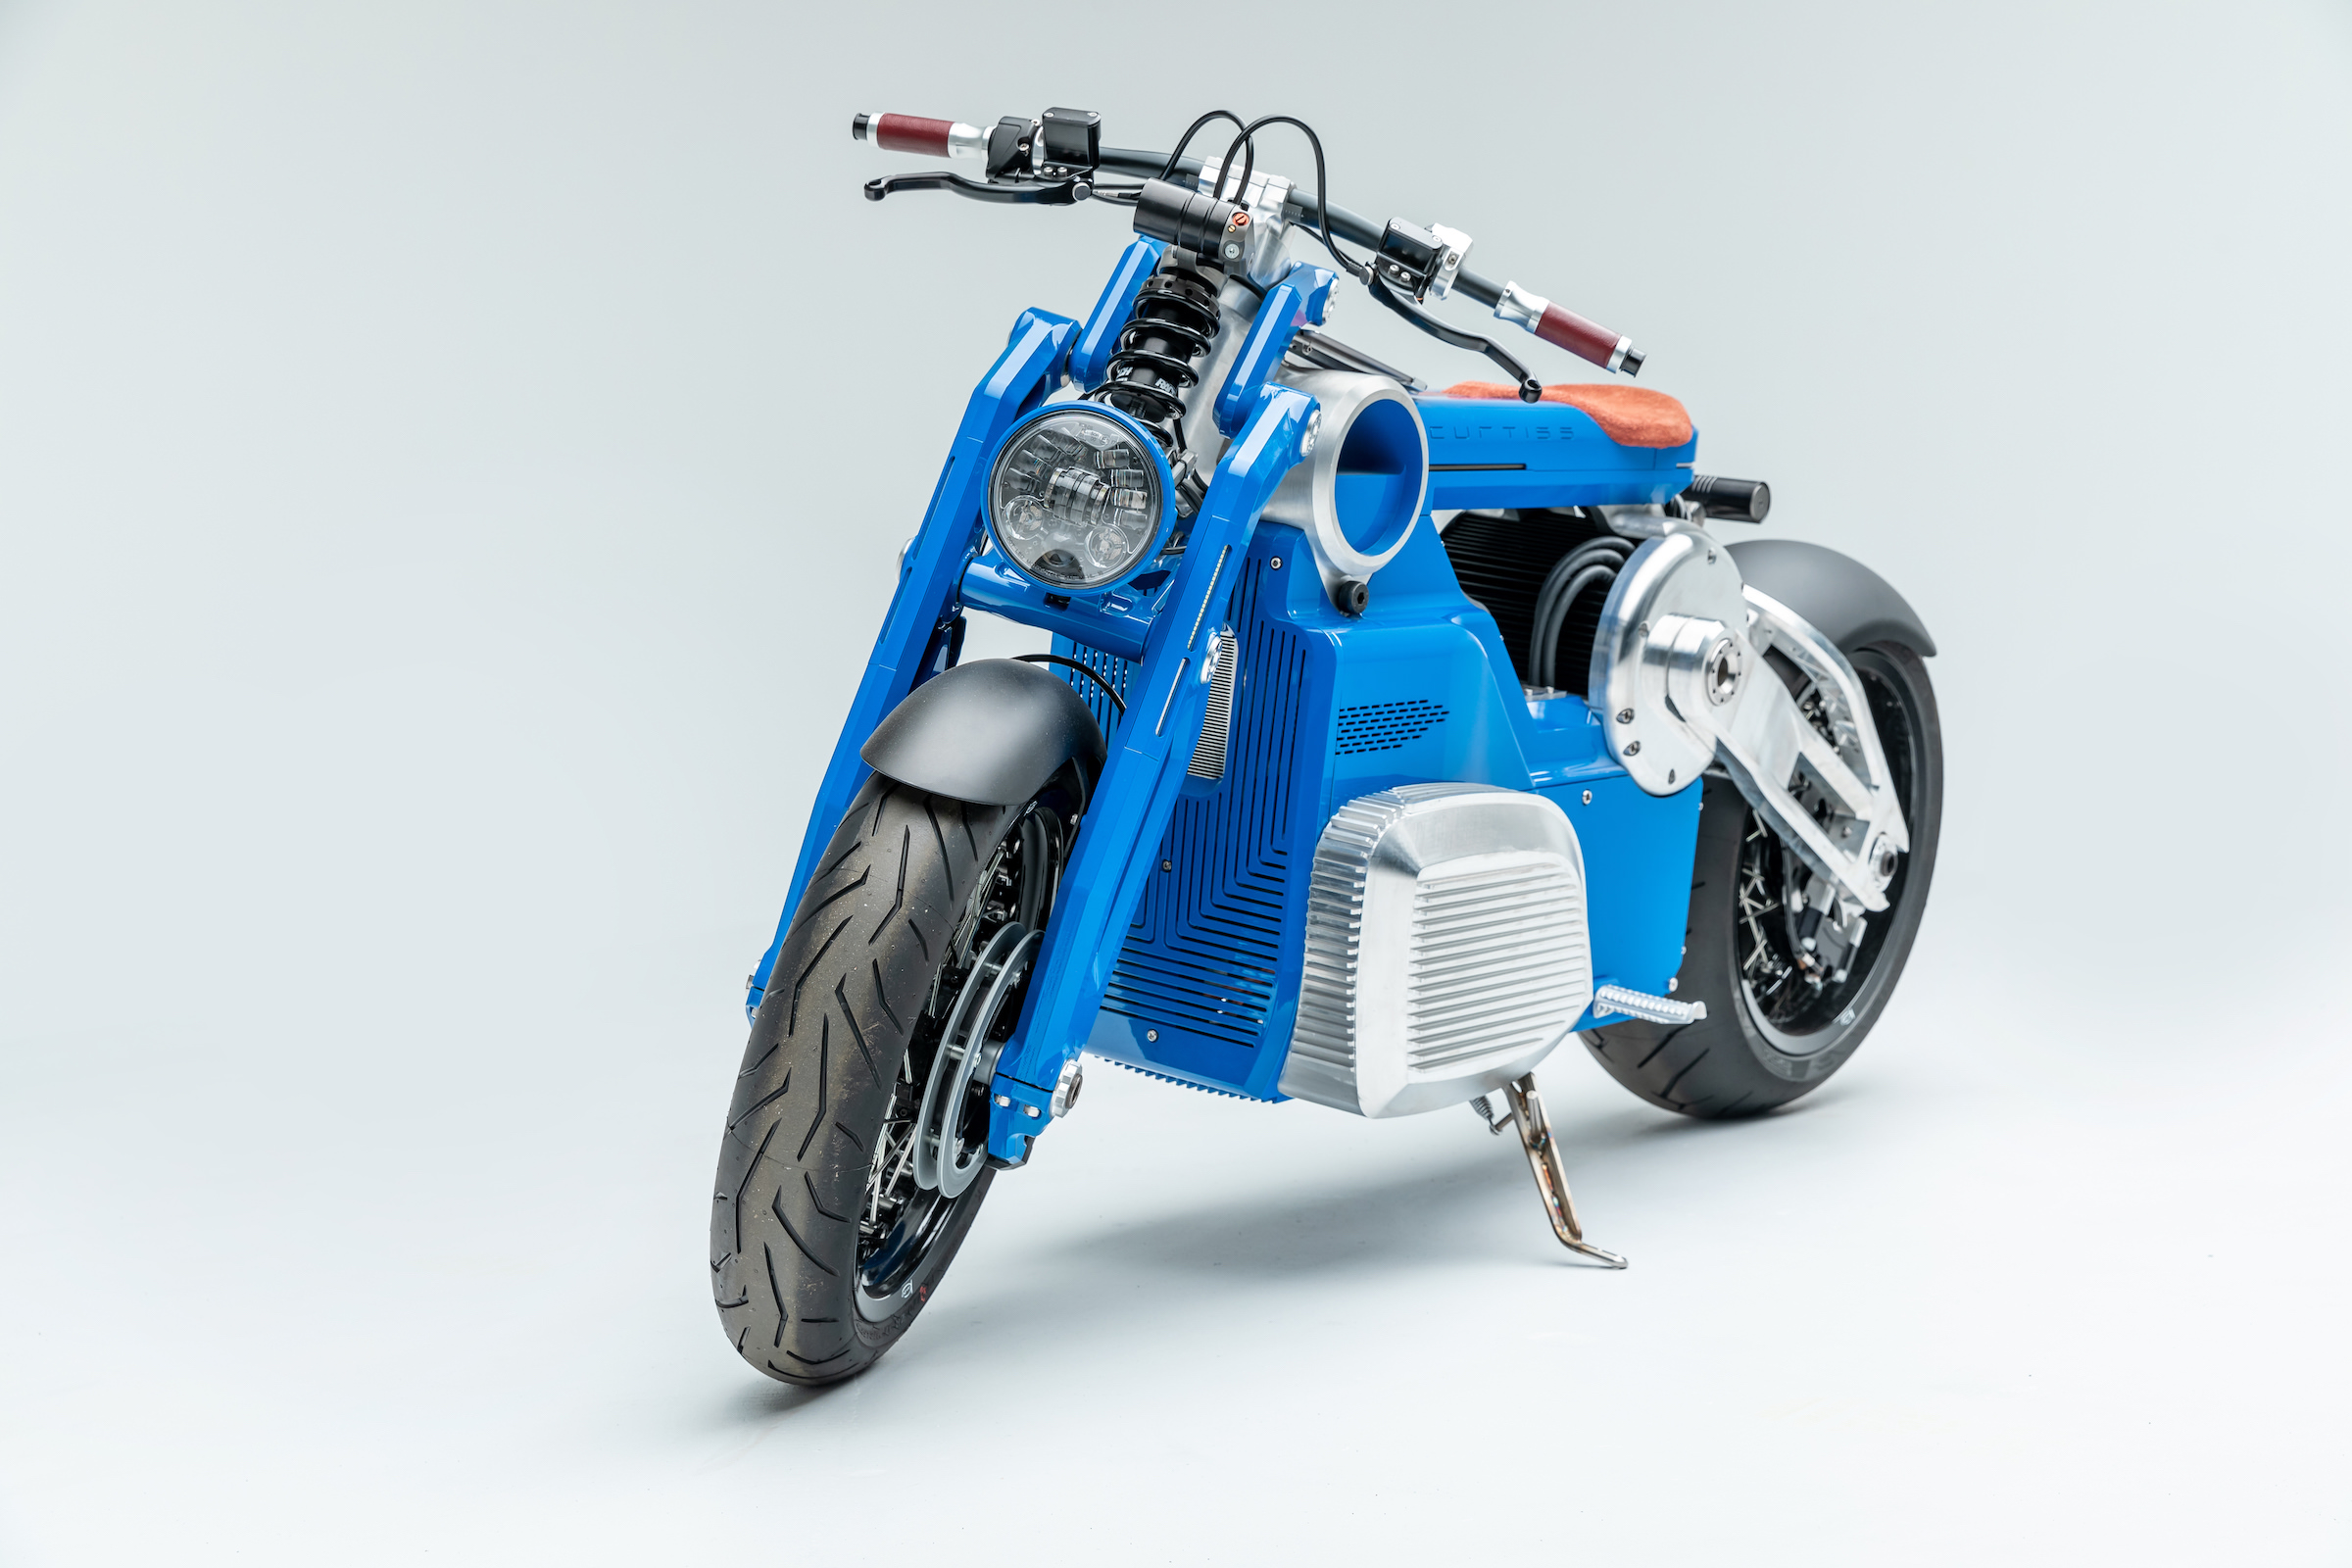 The Curtiss Zeus Electric Motorcycle - 190 HP - 0-60 MPH In